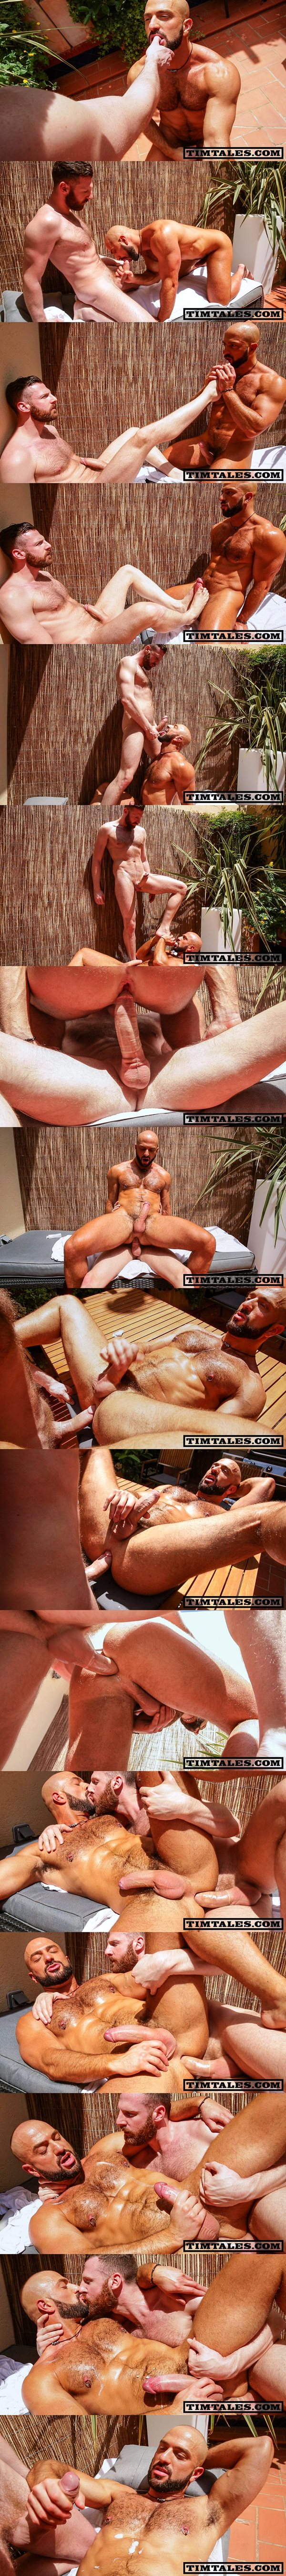 Timtales - Horse hung power top Tim Kruger fucks rugged handsome Italian beefcake Bruno Boni outdoors before he fucks the cum out of Bruno 02